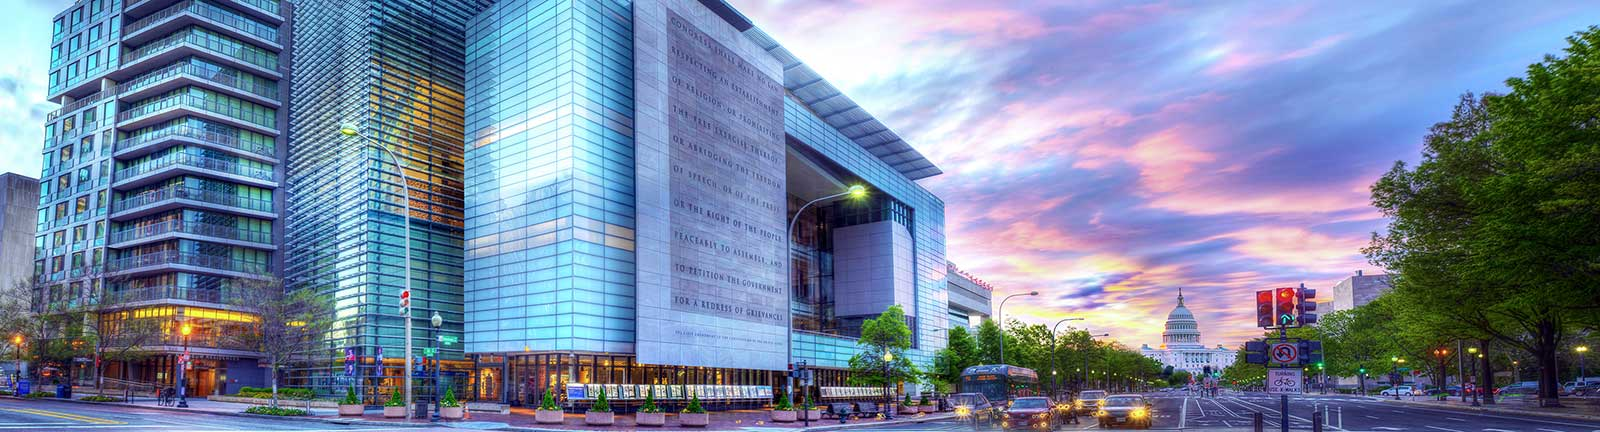 discover all attractions in washington dc washington org